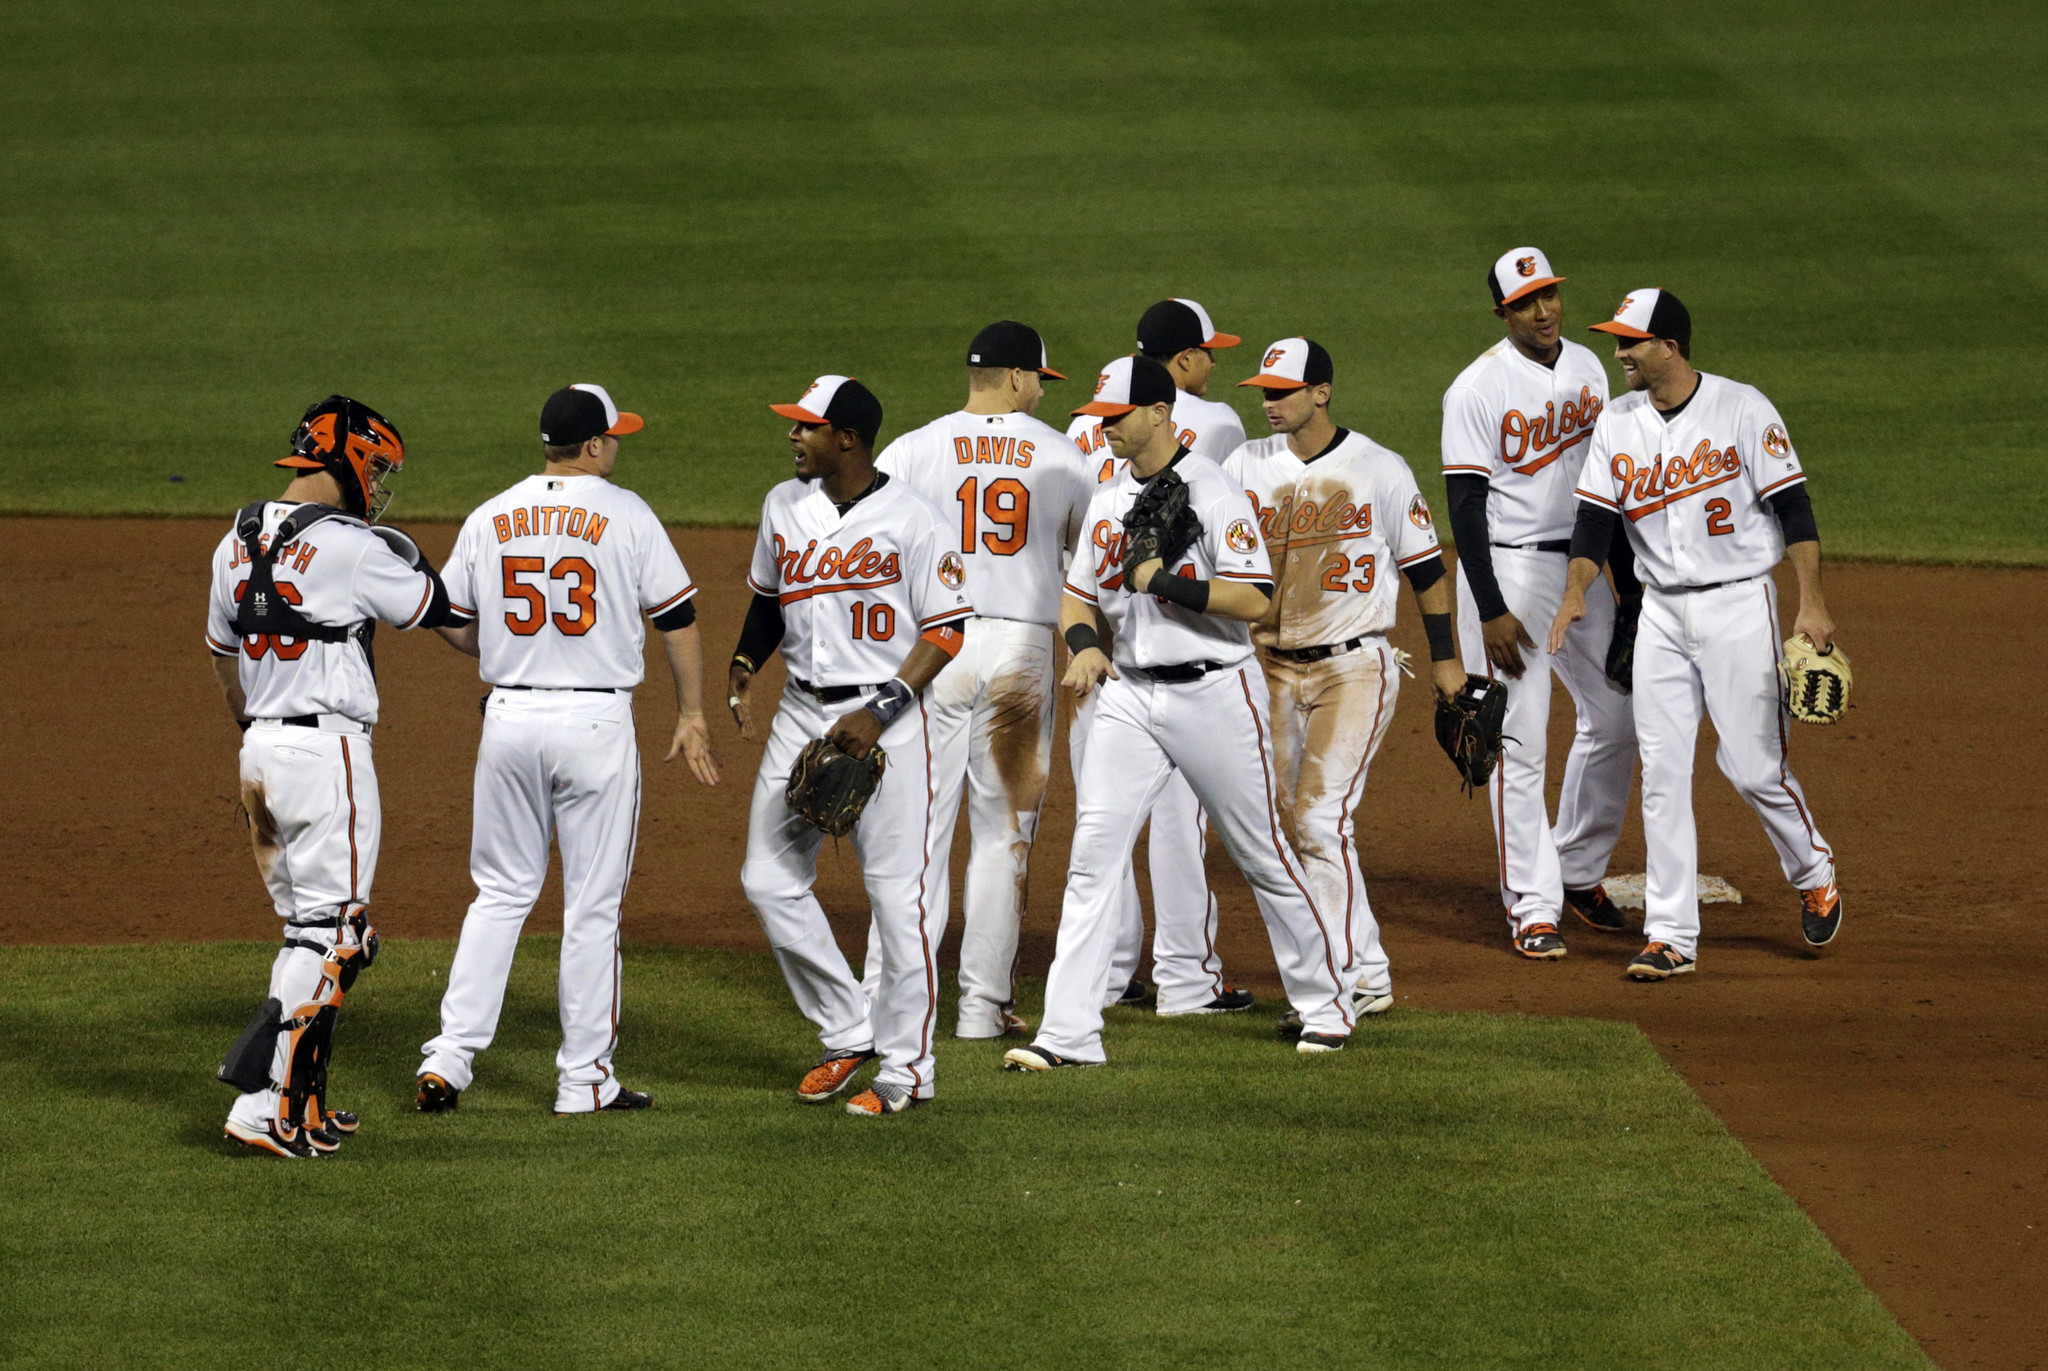 Bal-lane-closures-on-i-95-to-affect-commutes-to-orioles-weekend-games-vs-athletics-20160506